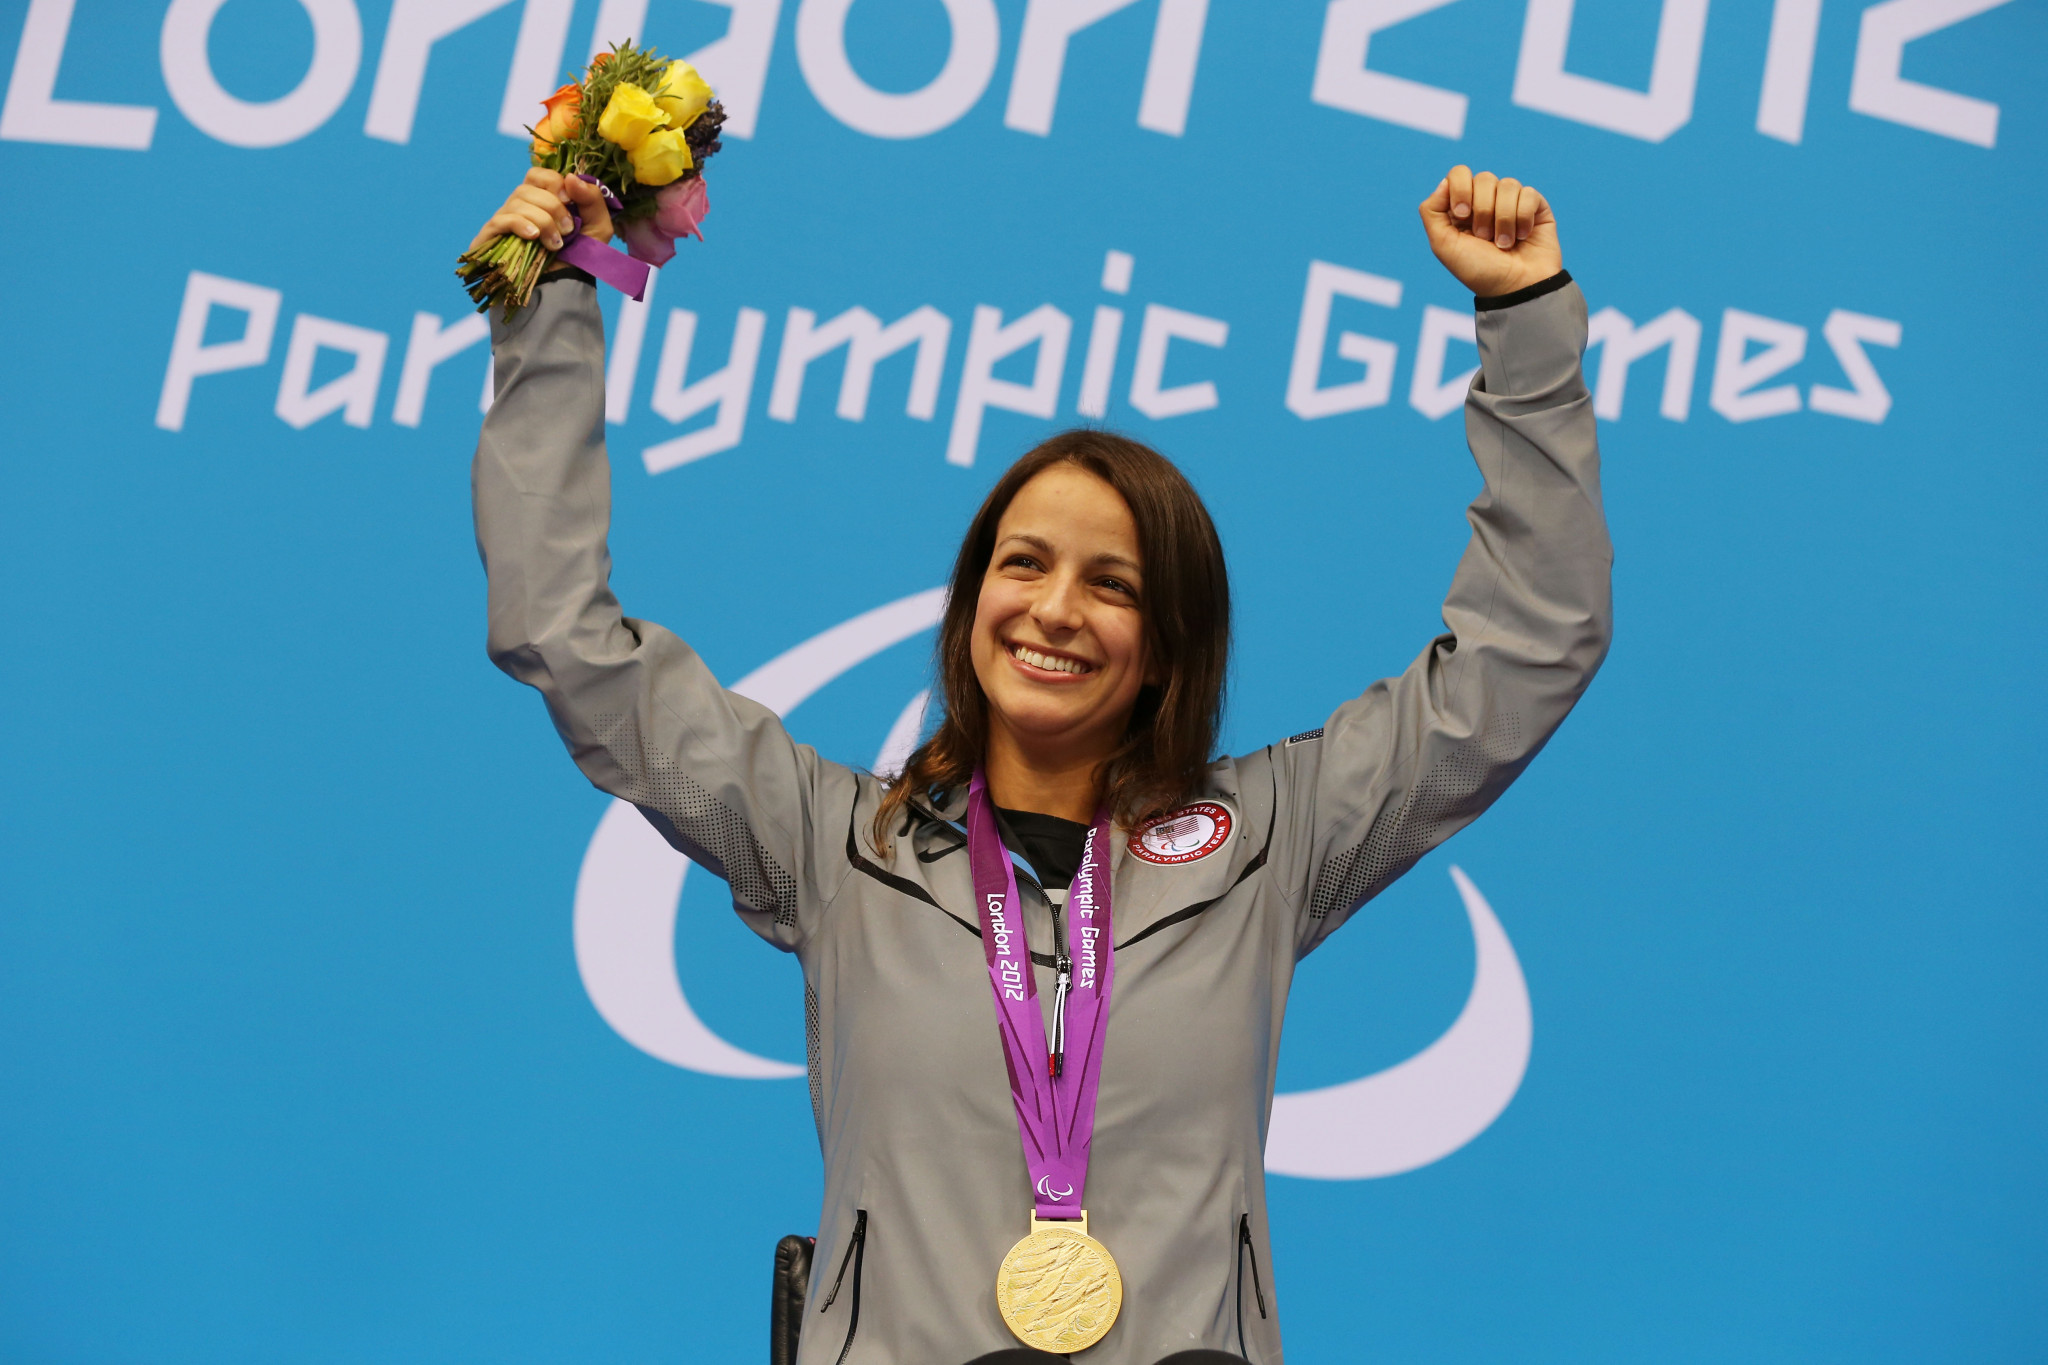 Gold medallist Victoria Arlen of the United States poses on the podium during the medal ceremony for the Women's 100m Freestyle - S6 final on day 10 of the London 2012 Paralympic Games ©Getty Images